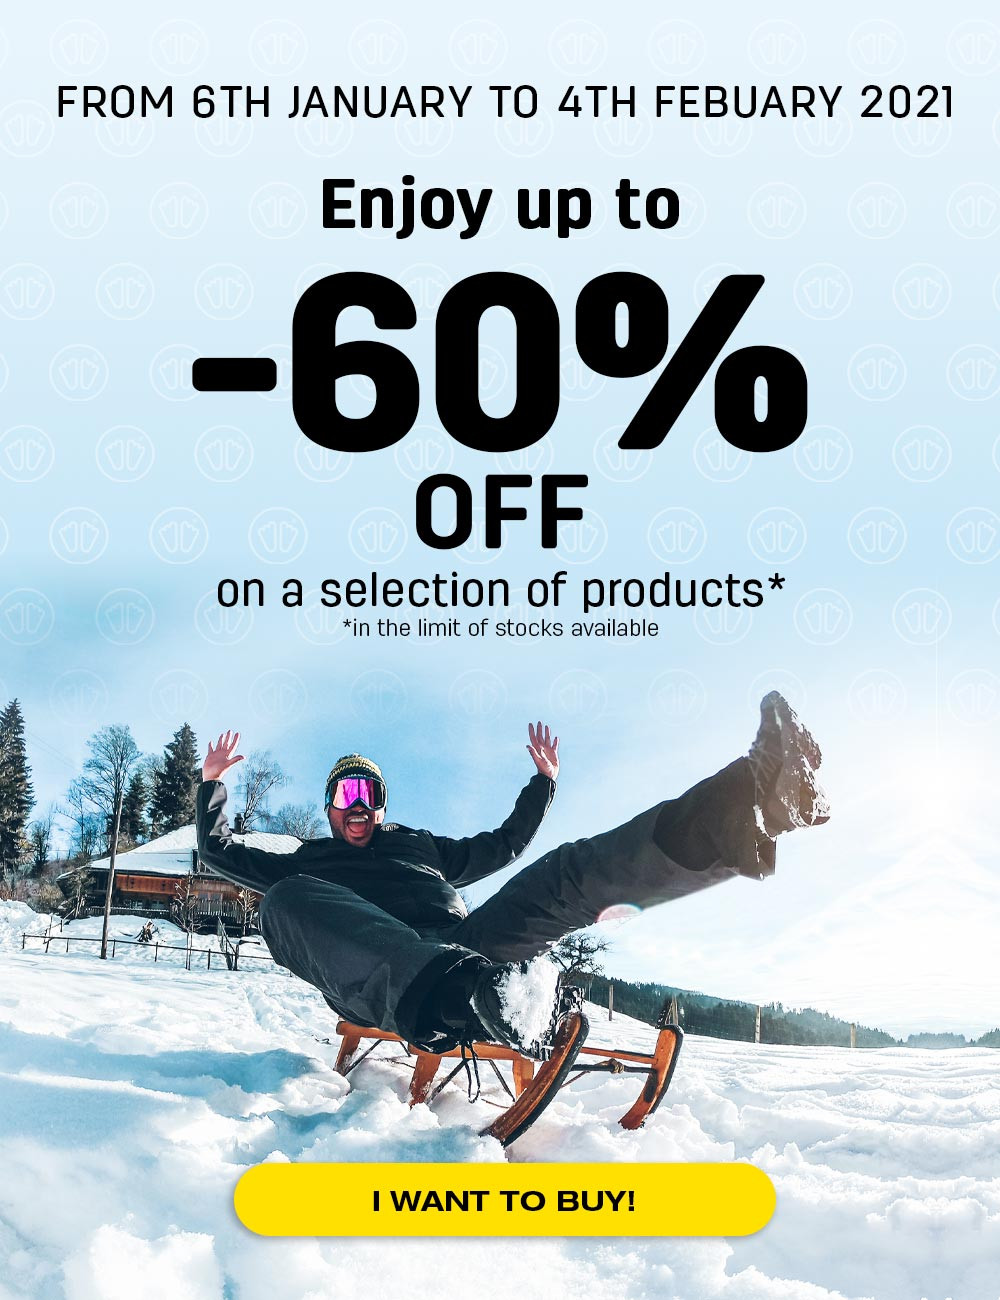 Enjoy up to 60% off on a selection of products!